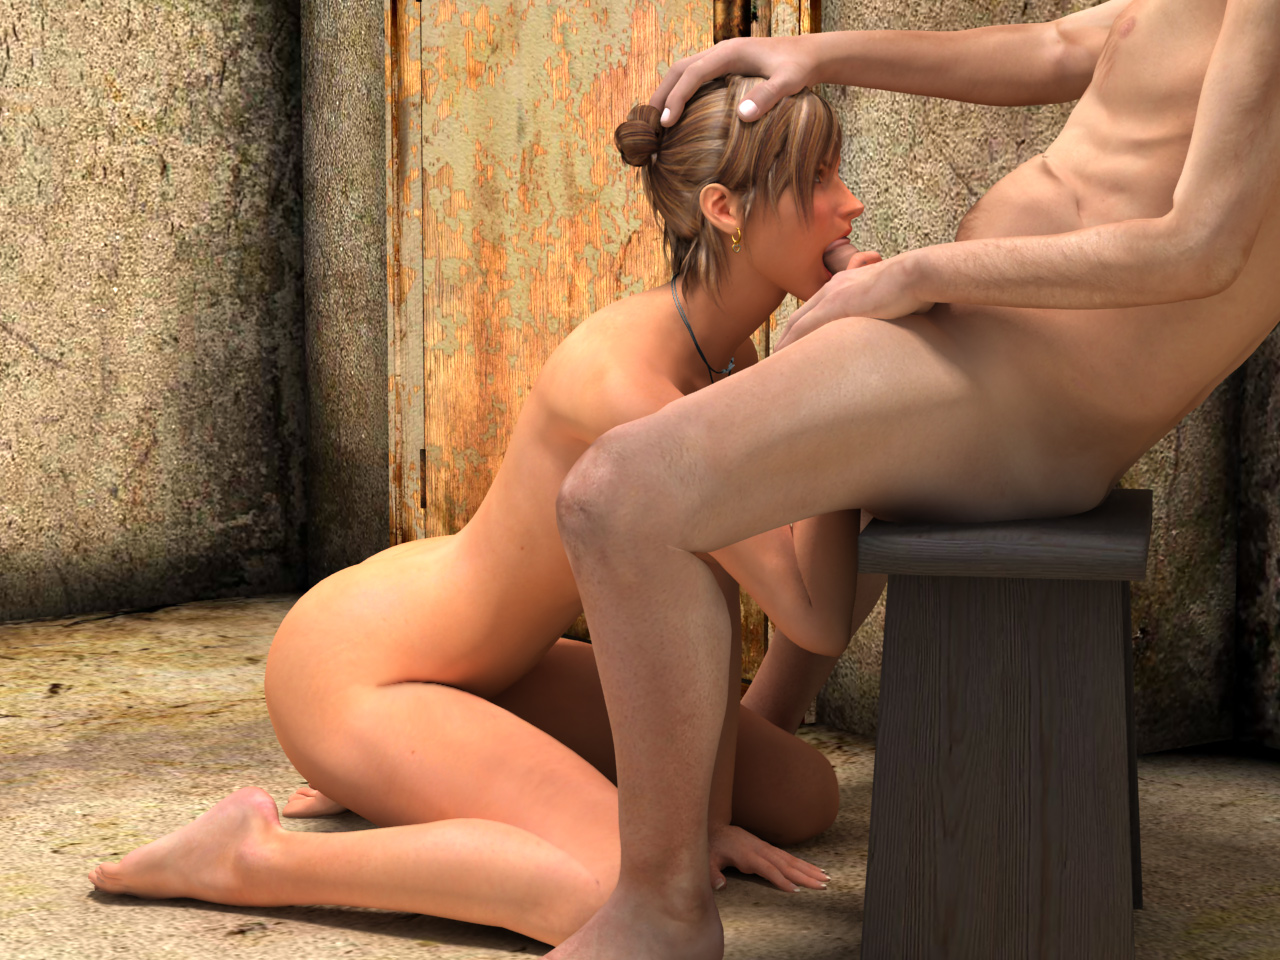 Sex fantasia video sexy pic